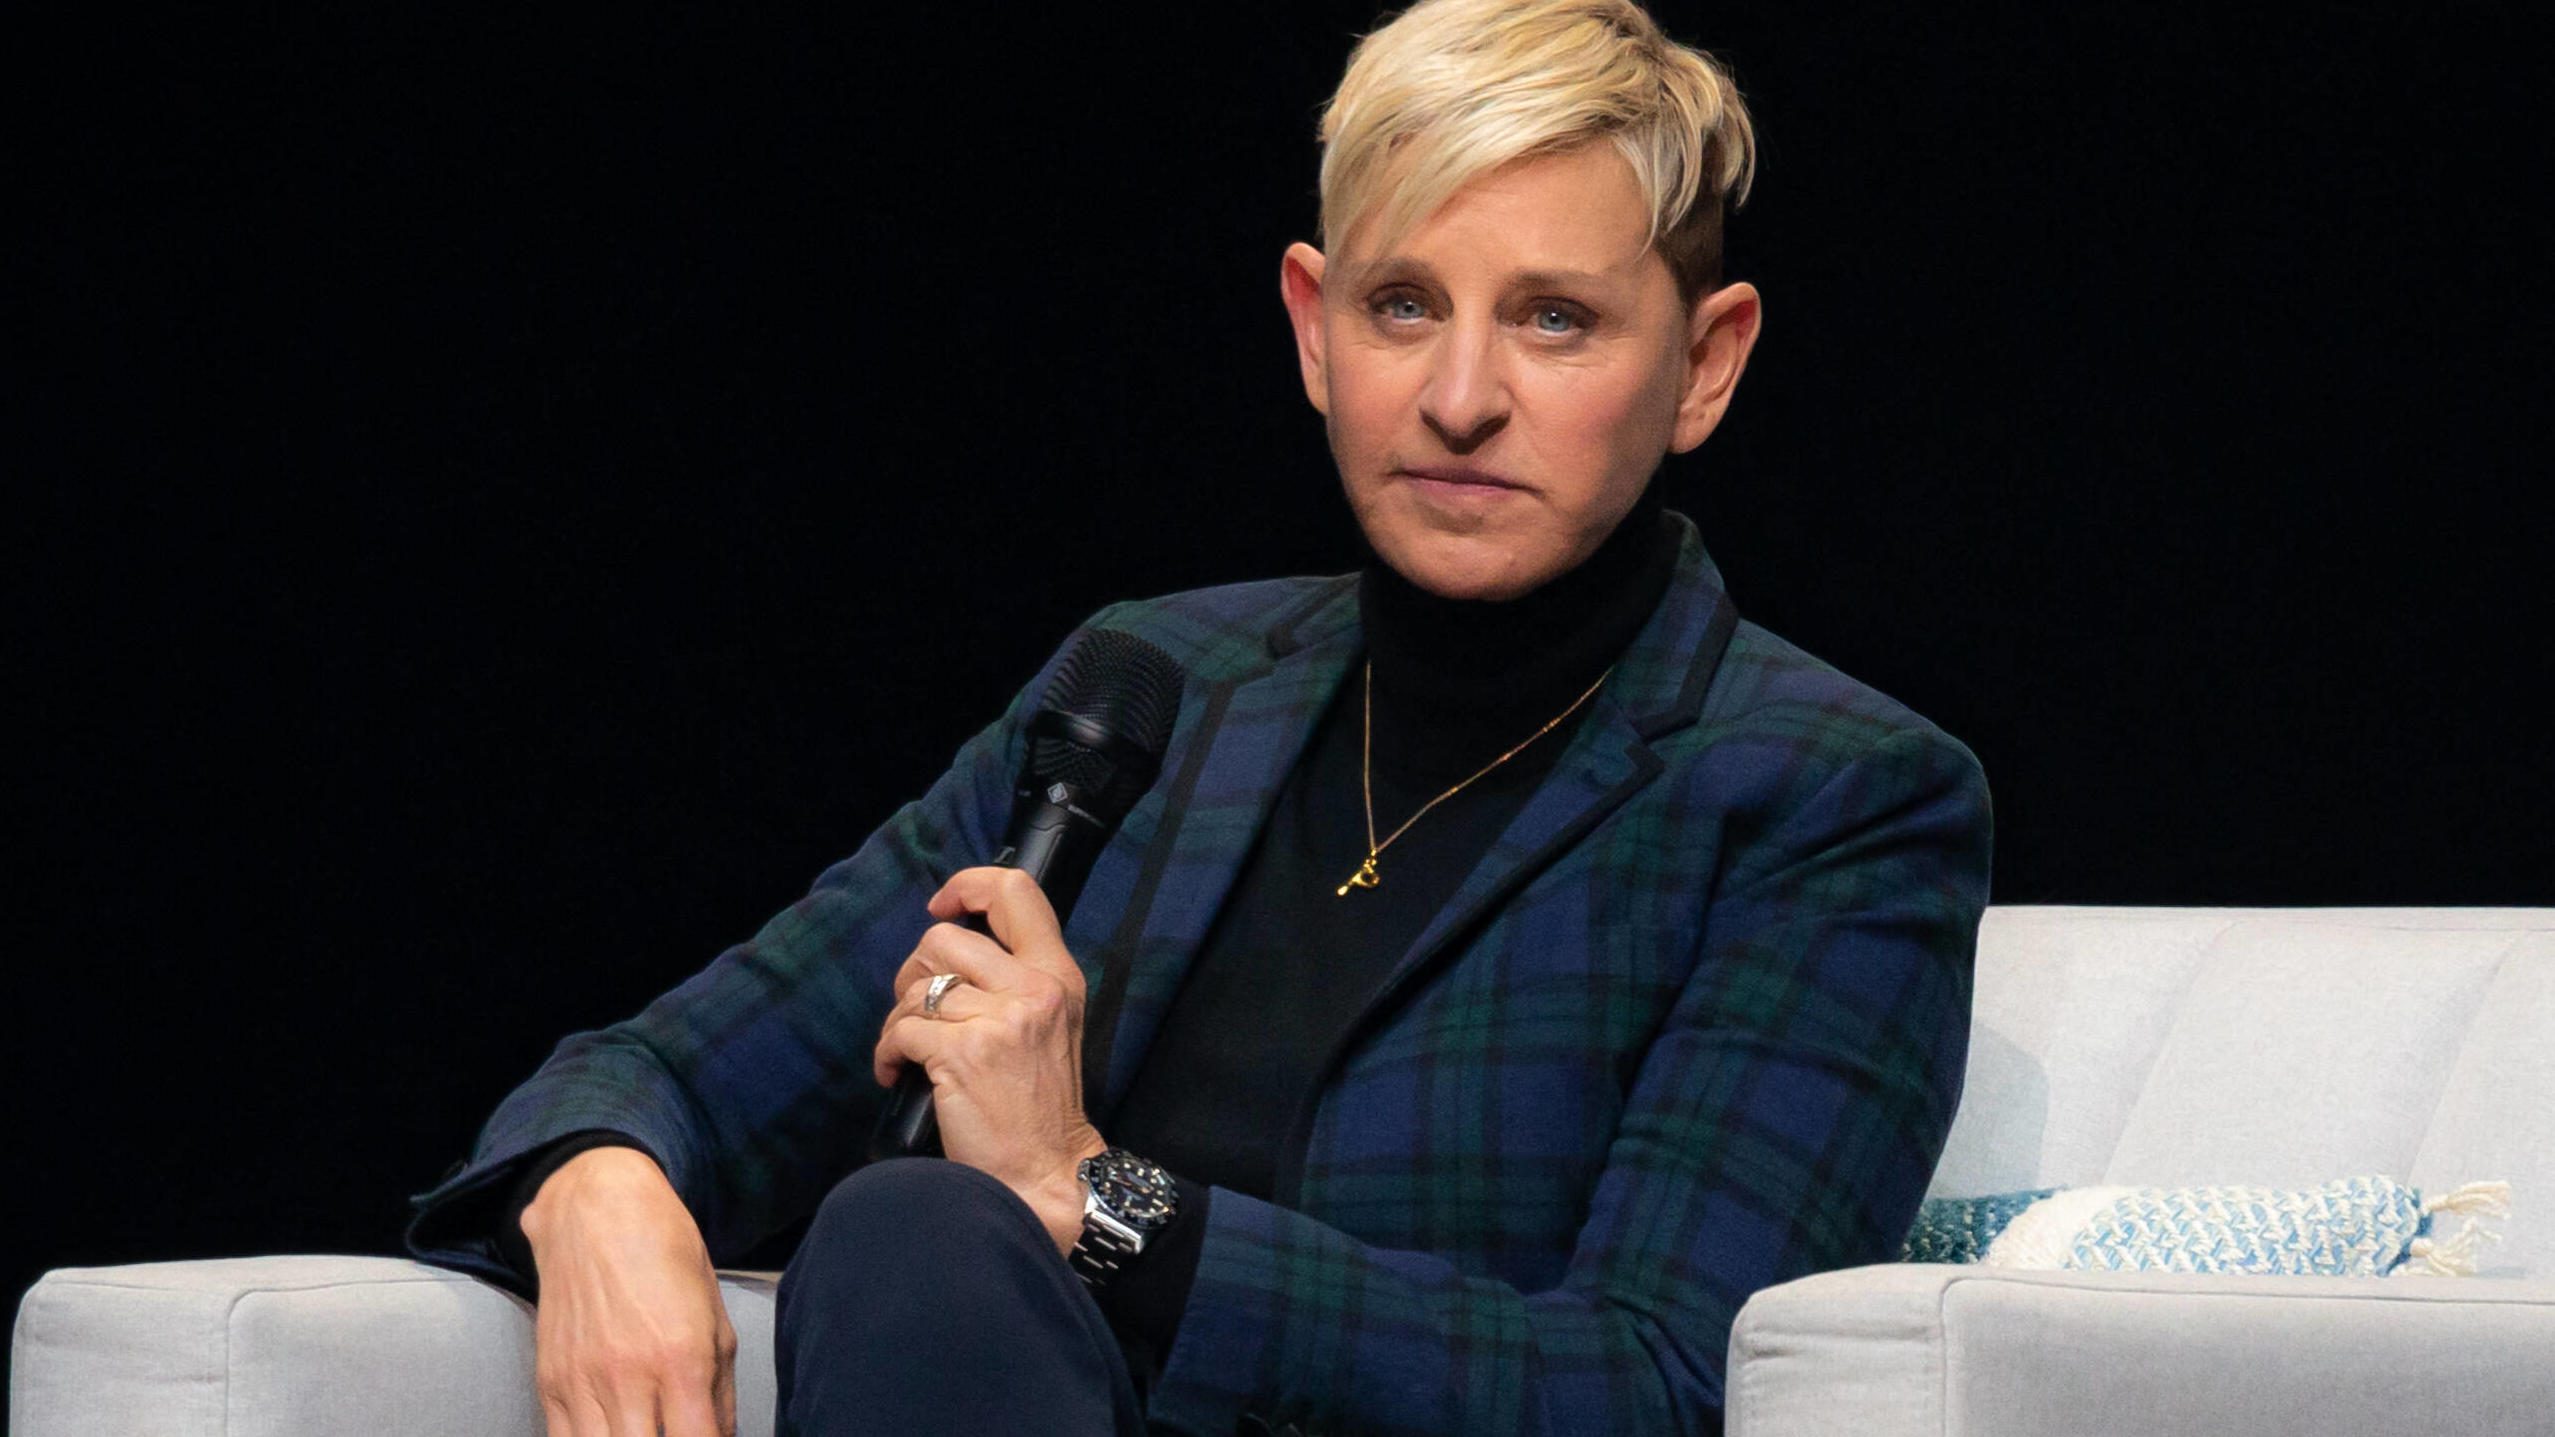 Portrait - Ellen Degeneres in Montreal, Canada Ellen Degeneres speaks at the Bell Center in Montreal. March 1, 2019, Montreal, Canada. Montreal Quebec Canada PUBLICATIONxINxGERxSUIxAUTxONLY Copyright: xDavidxHimbertx HL_DHIMBERT_729252